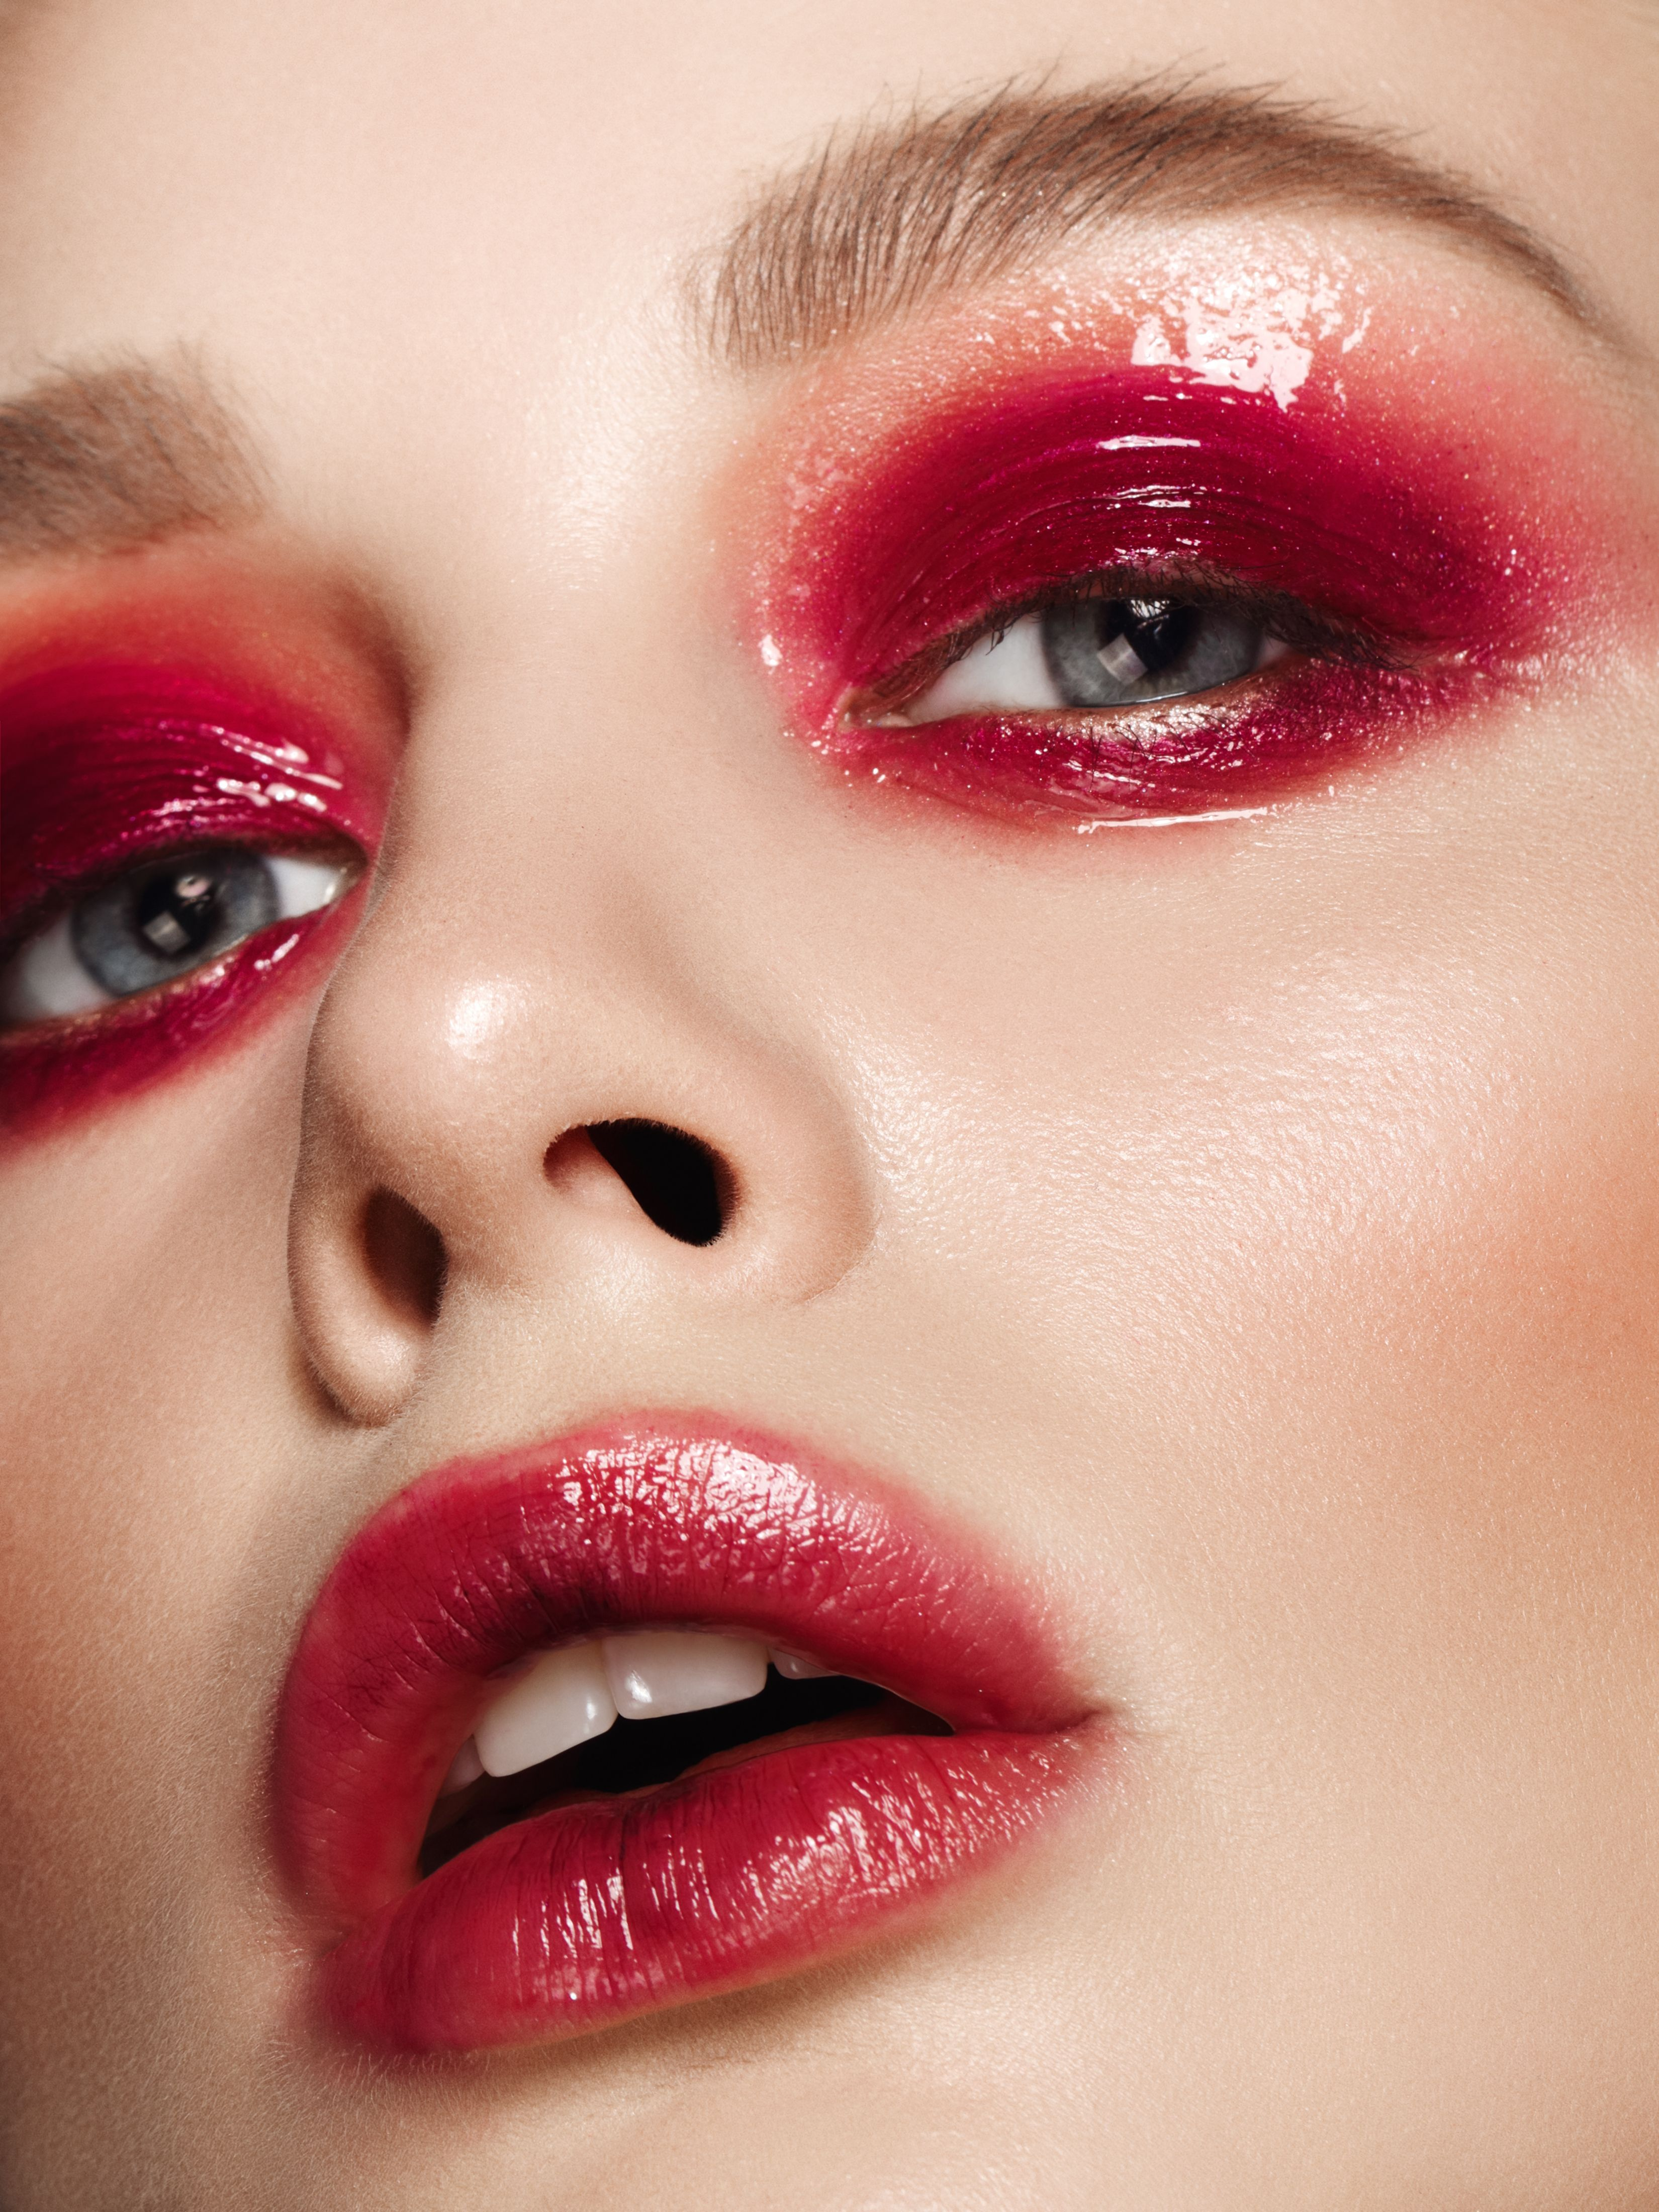 Beauty News März 2019 in 2020 Fashion editorial makeup